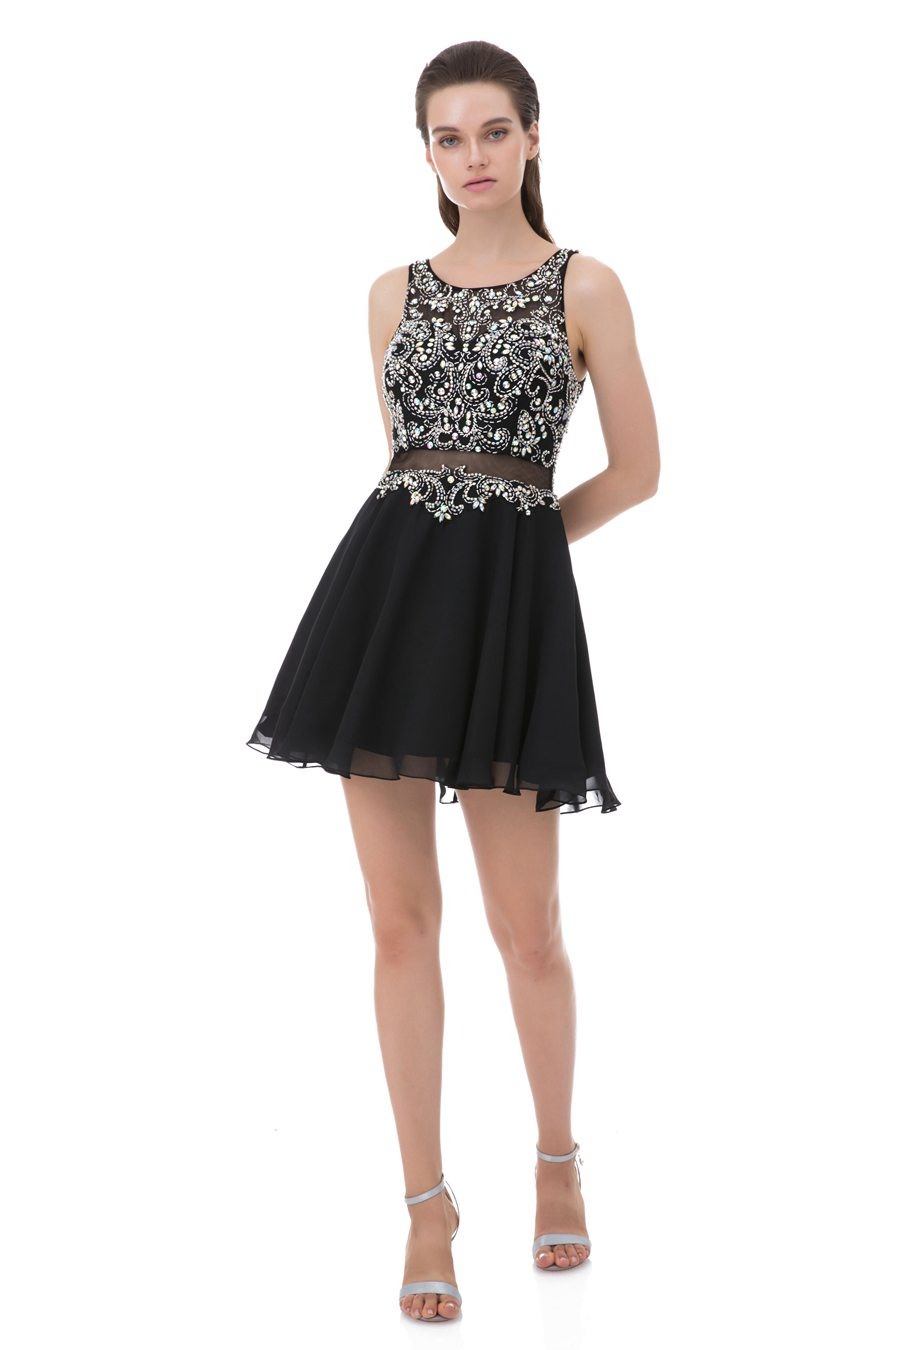 Short Scoop Beaded A line Homecoming Dress mini Illusion Party Outfits Sleeveless Ball Gown Rhinestone Chiffon Cocktail Dresses in Homecoming Dresses from Weddings Events